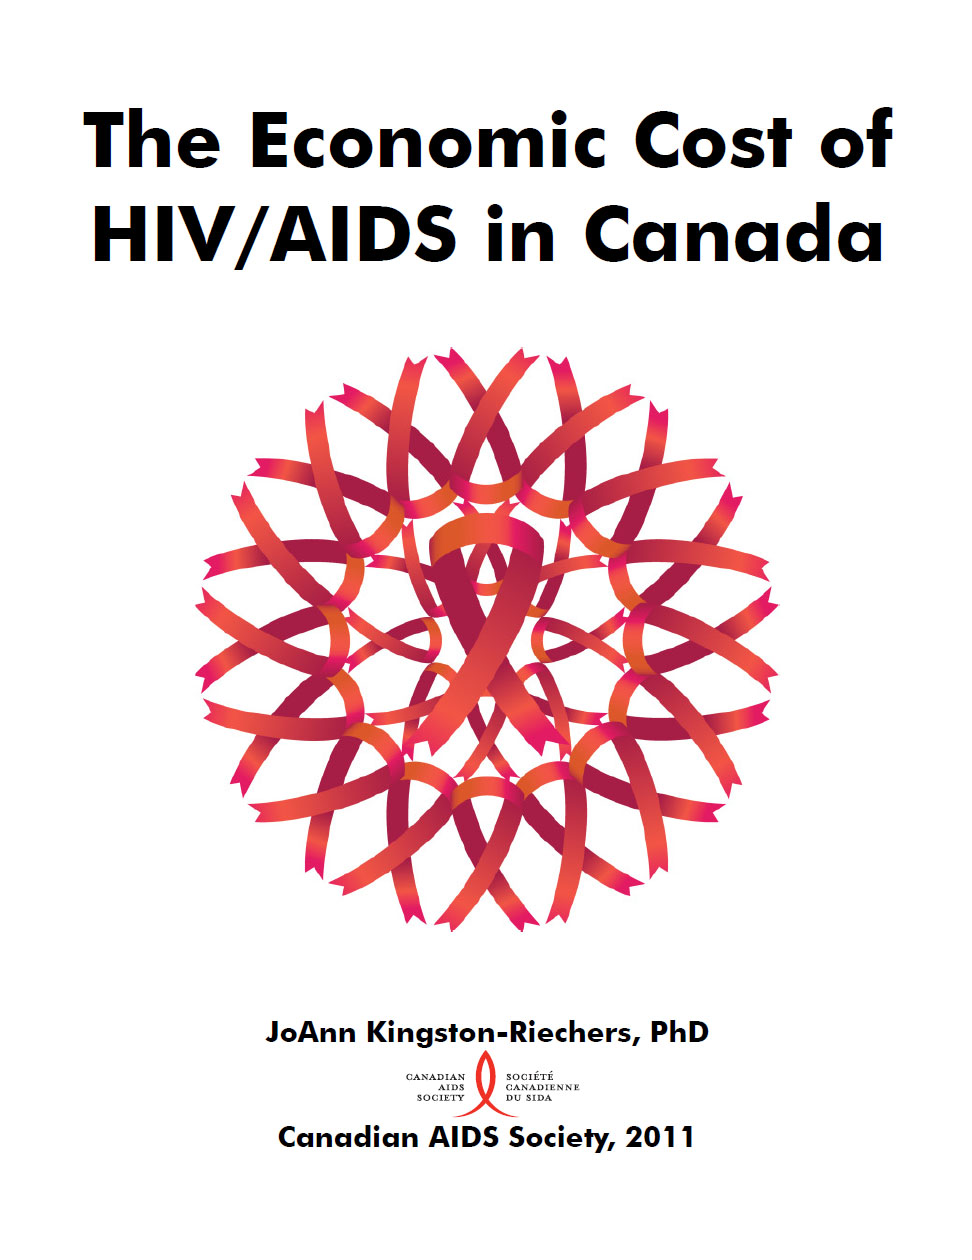 The Economic Cost of HIV/AIDS in Canada